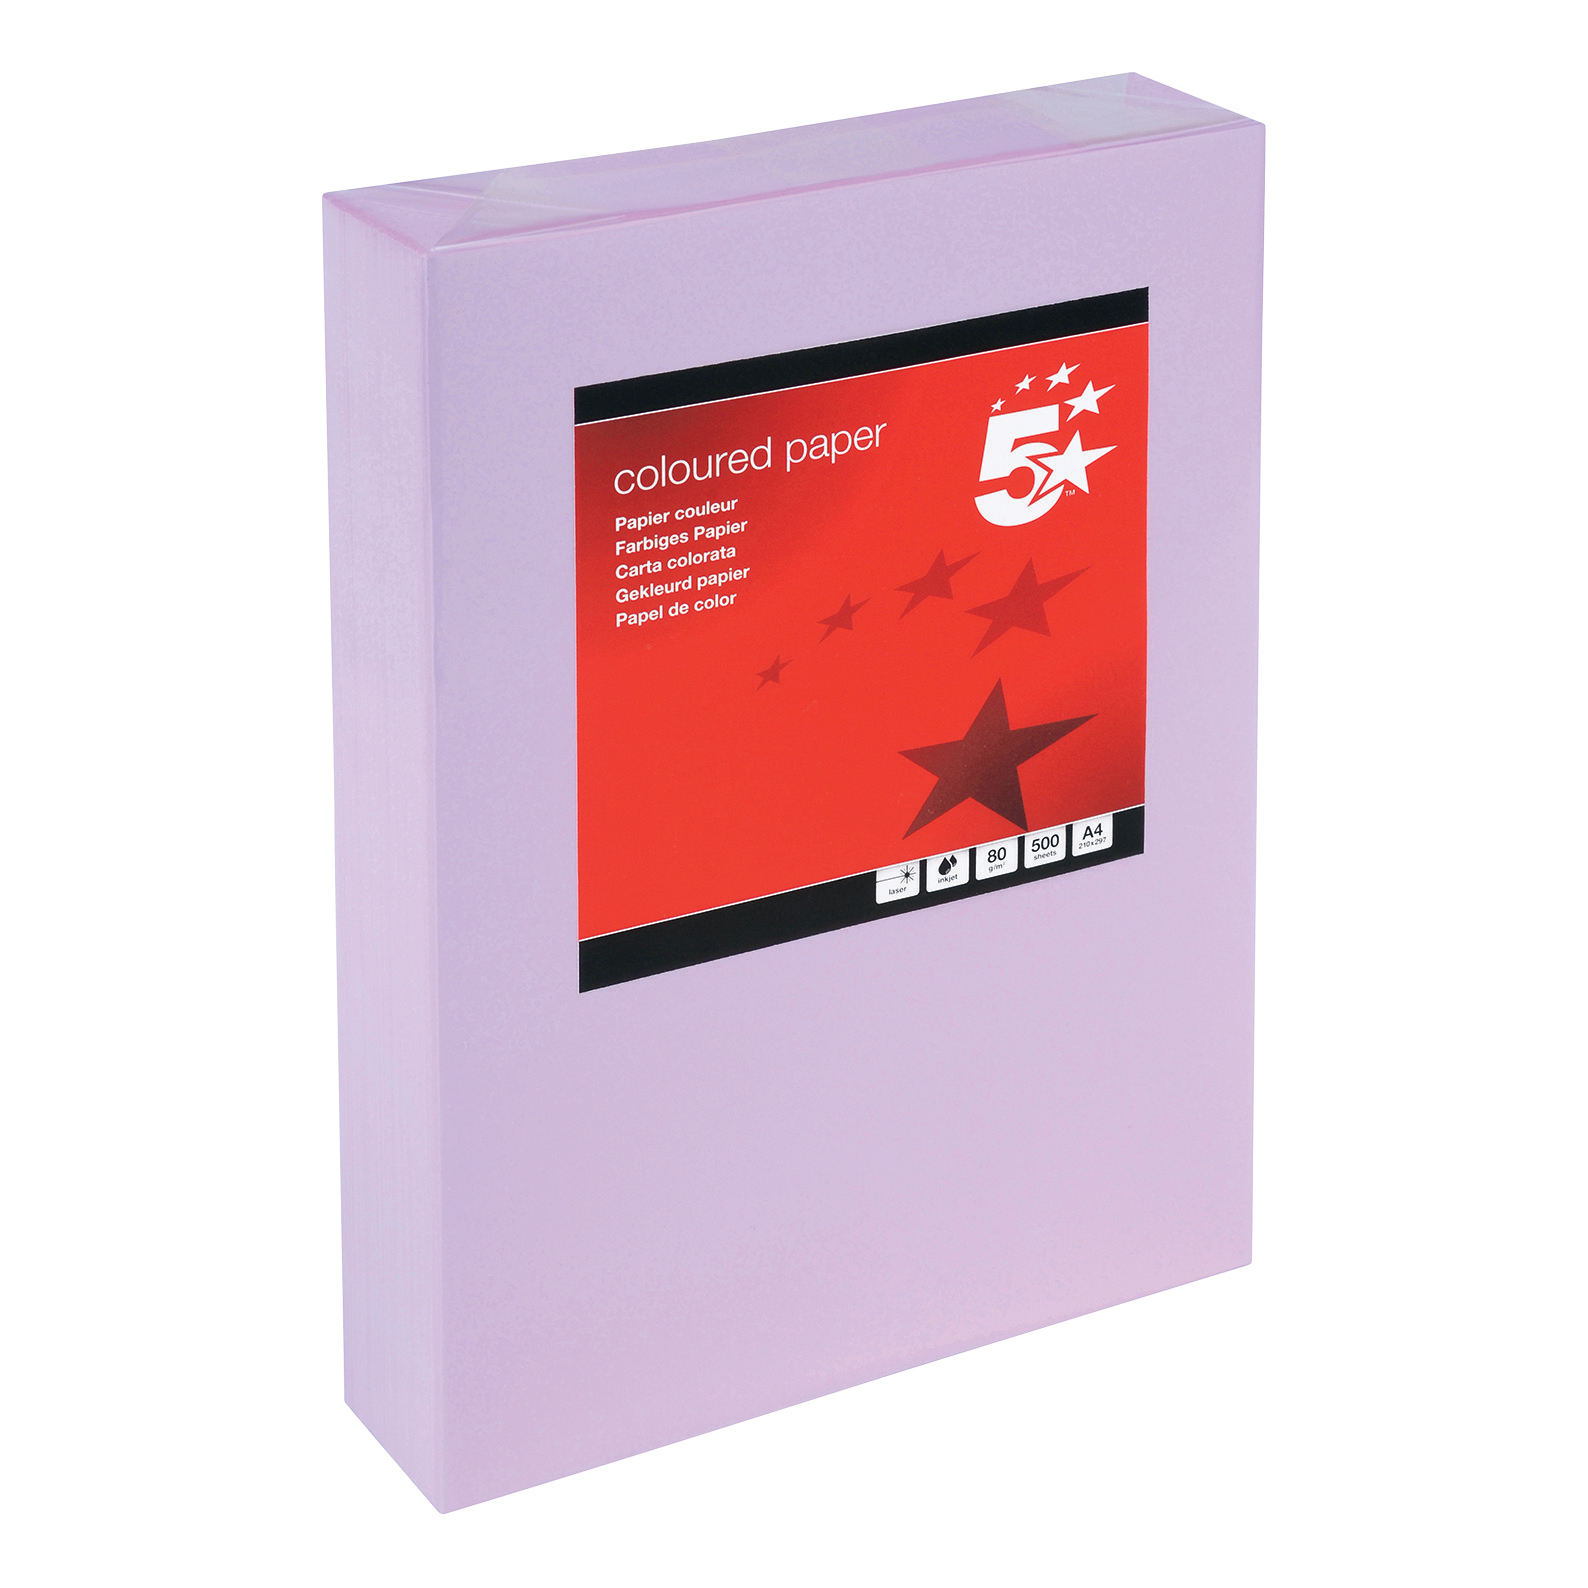 A4 5 Star Office Coloured Copier Paper Multifunctional Ream-Wrapped 80gsm A4 Medium Violet 500 Sheets